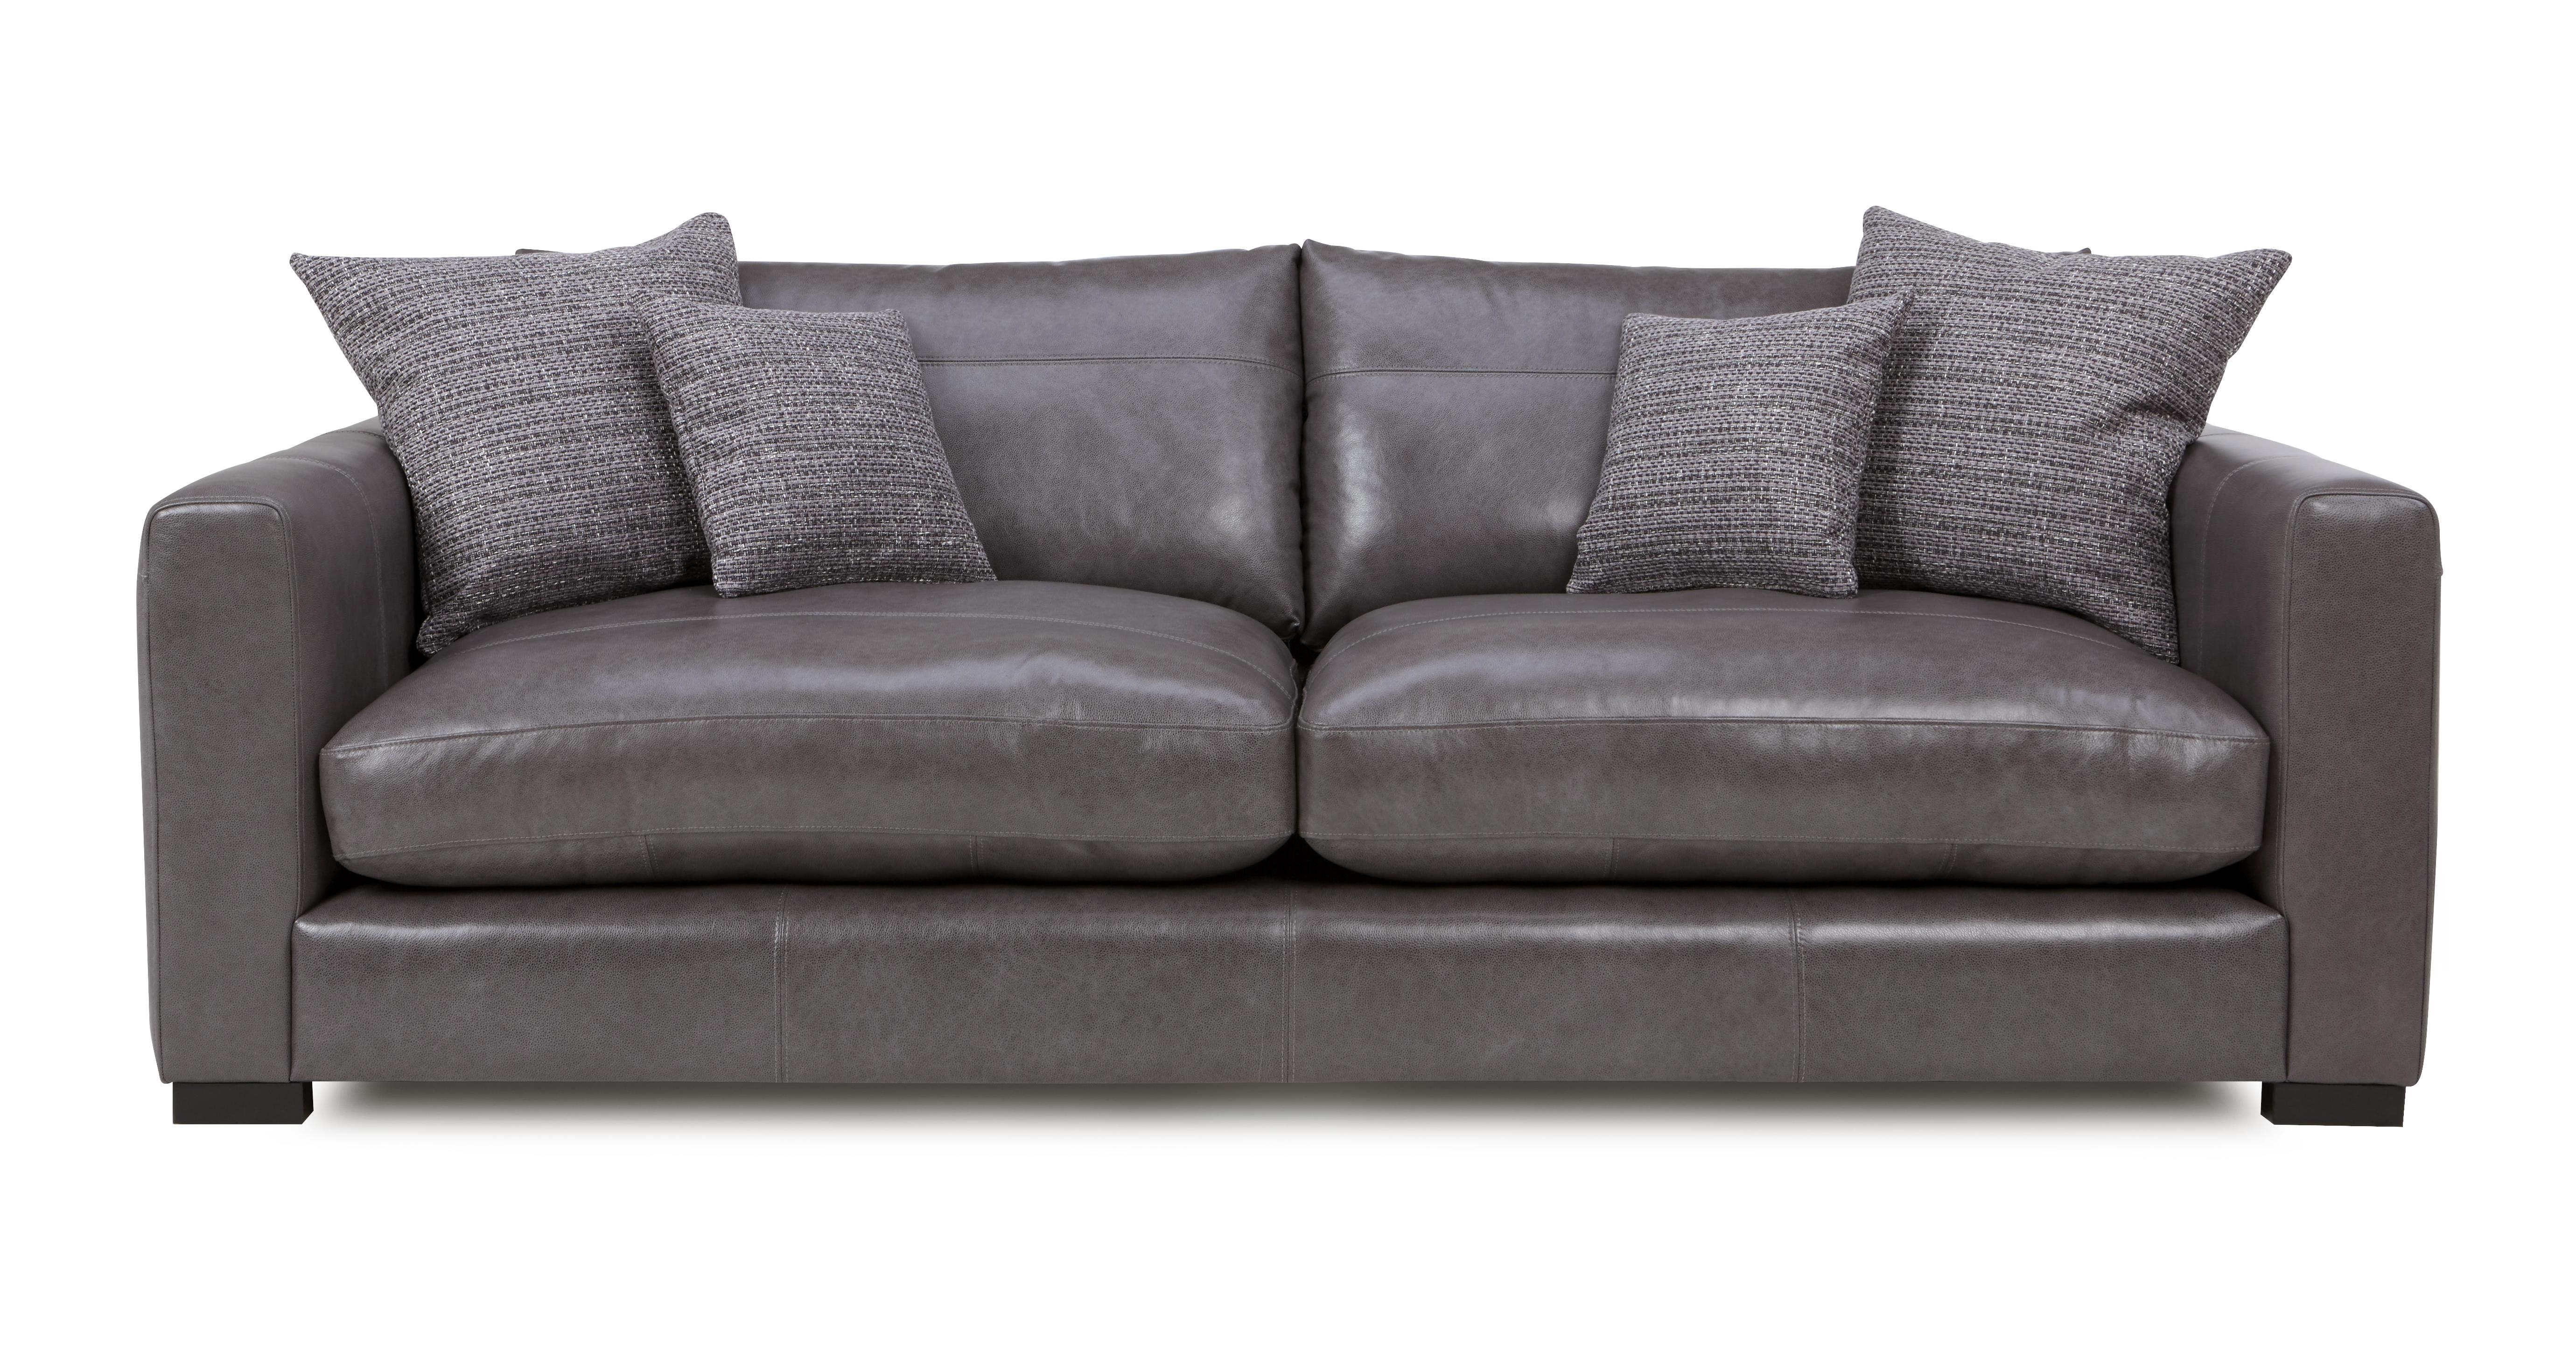 Leather Sofas At Dfs Brokeasshome Com